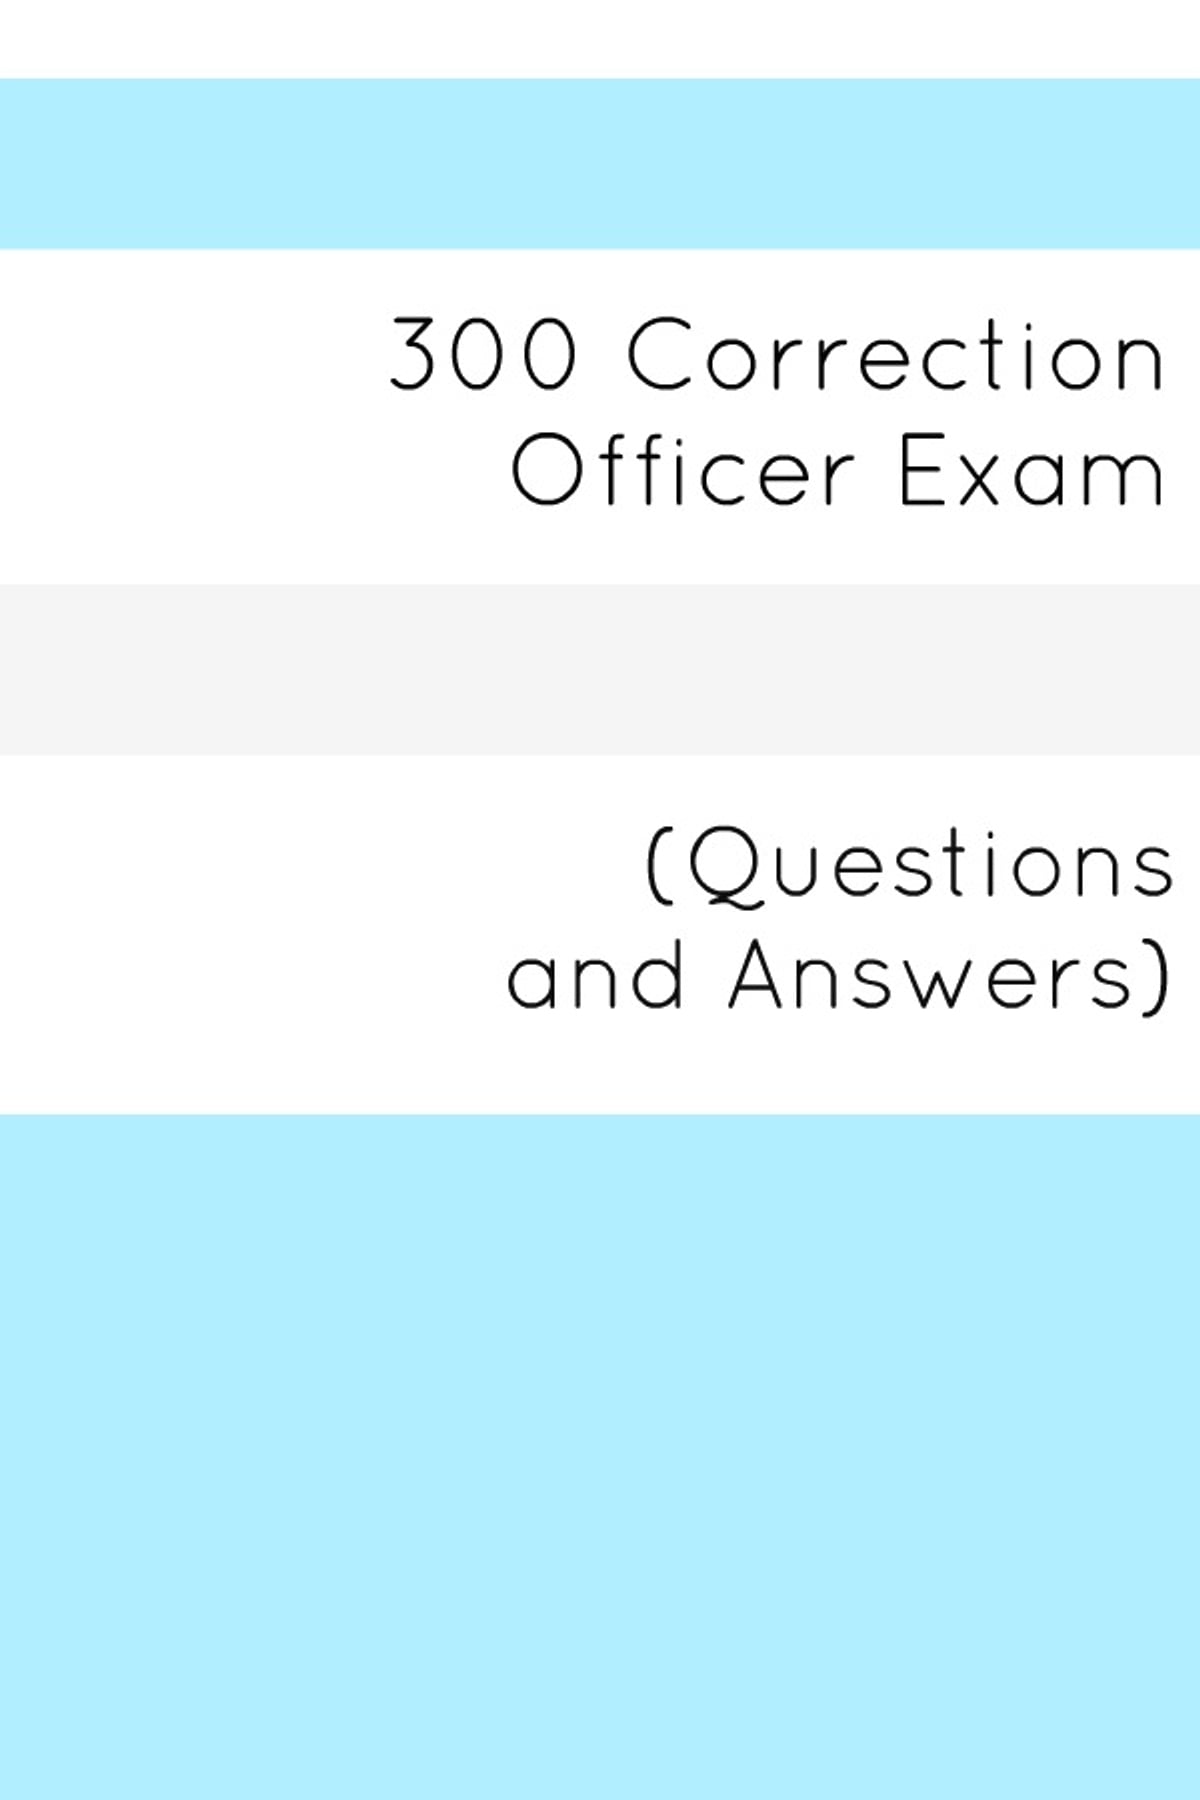 300 Correction Officers Exam (Questions and Answers) eBook by Minute Help  Guides - 1230000012078 | Rakuten Kobo